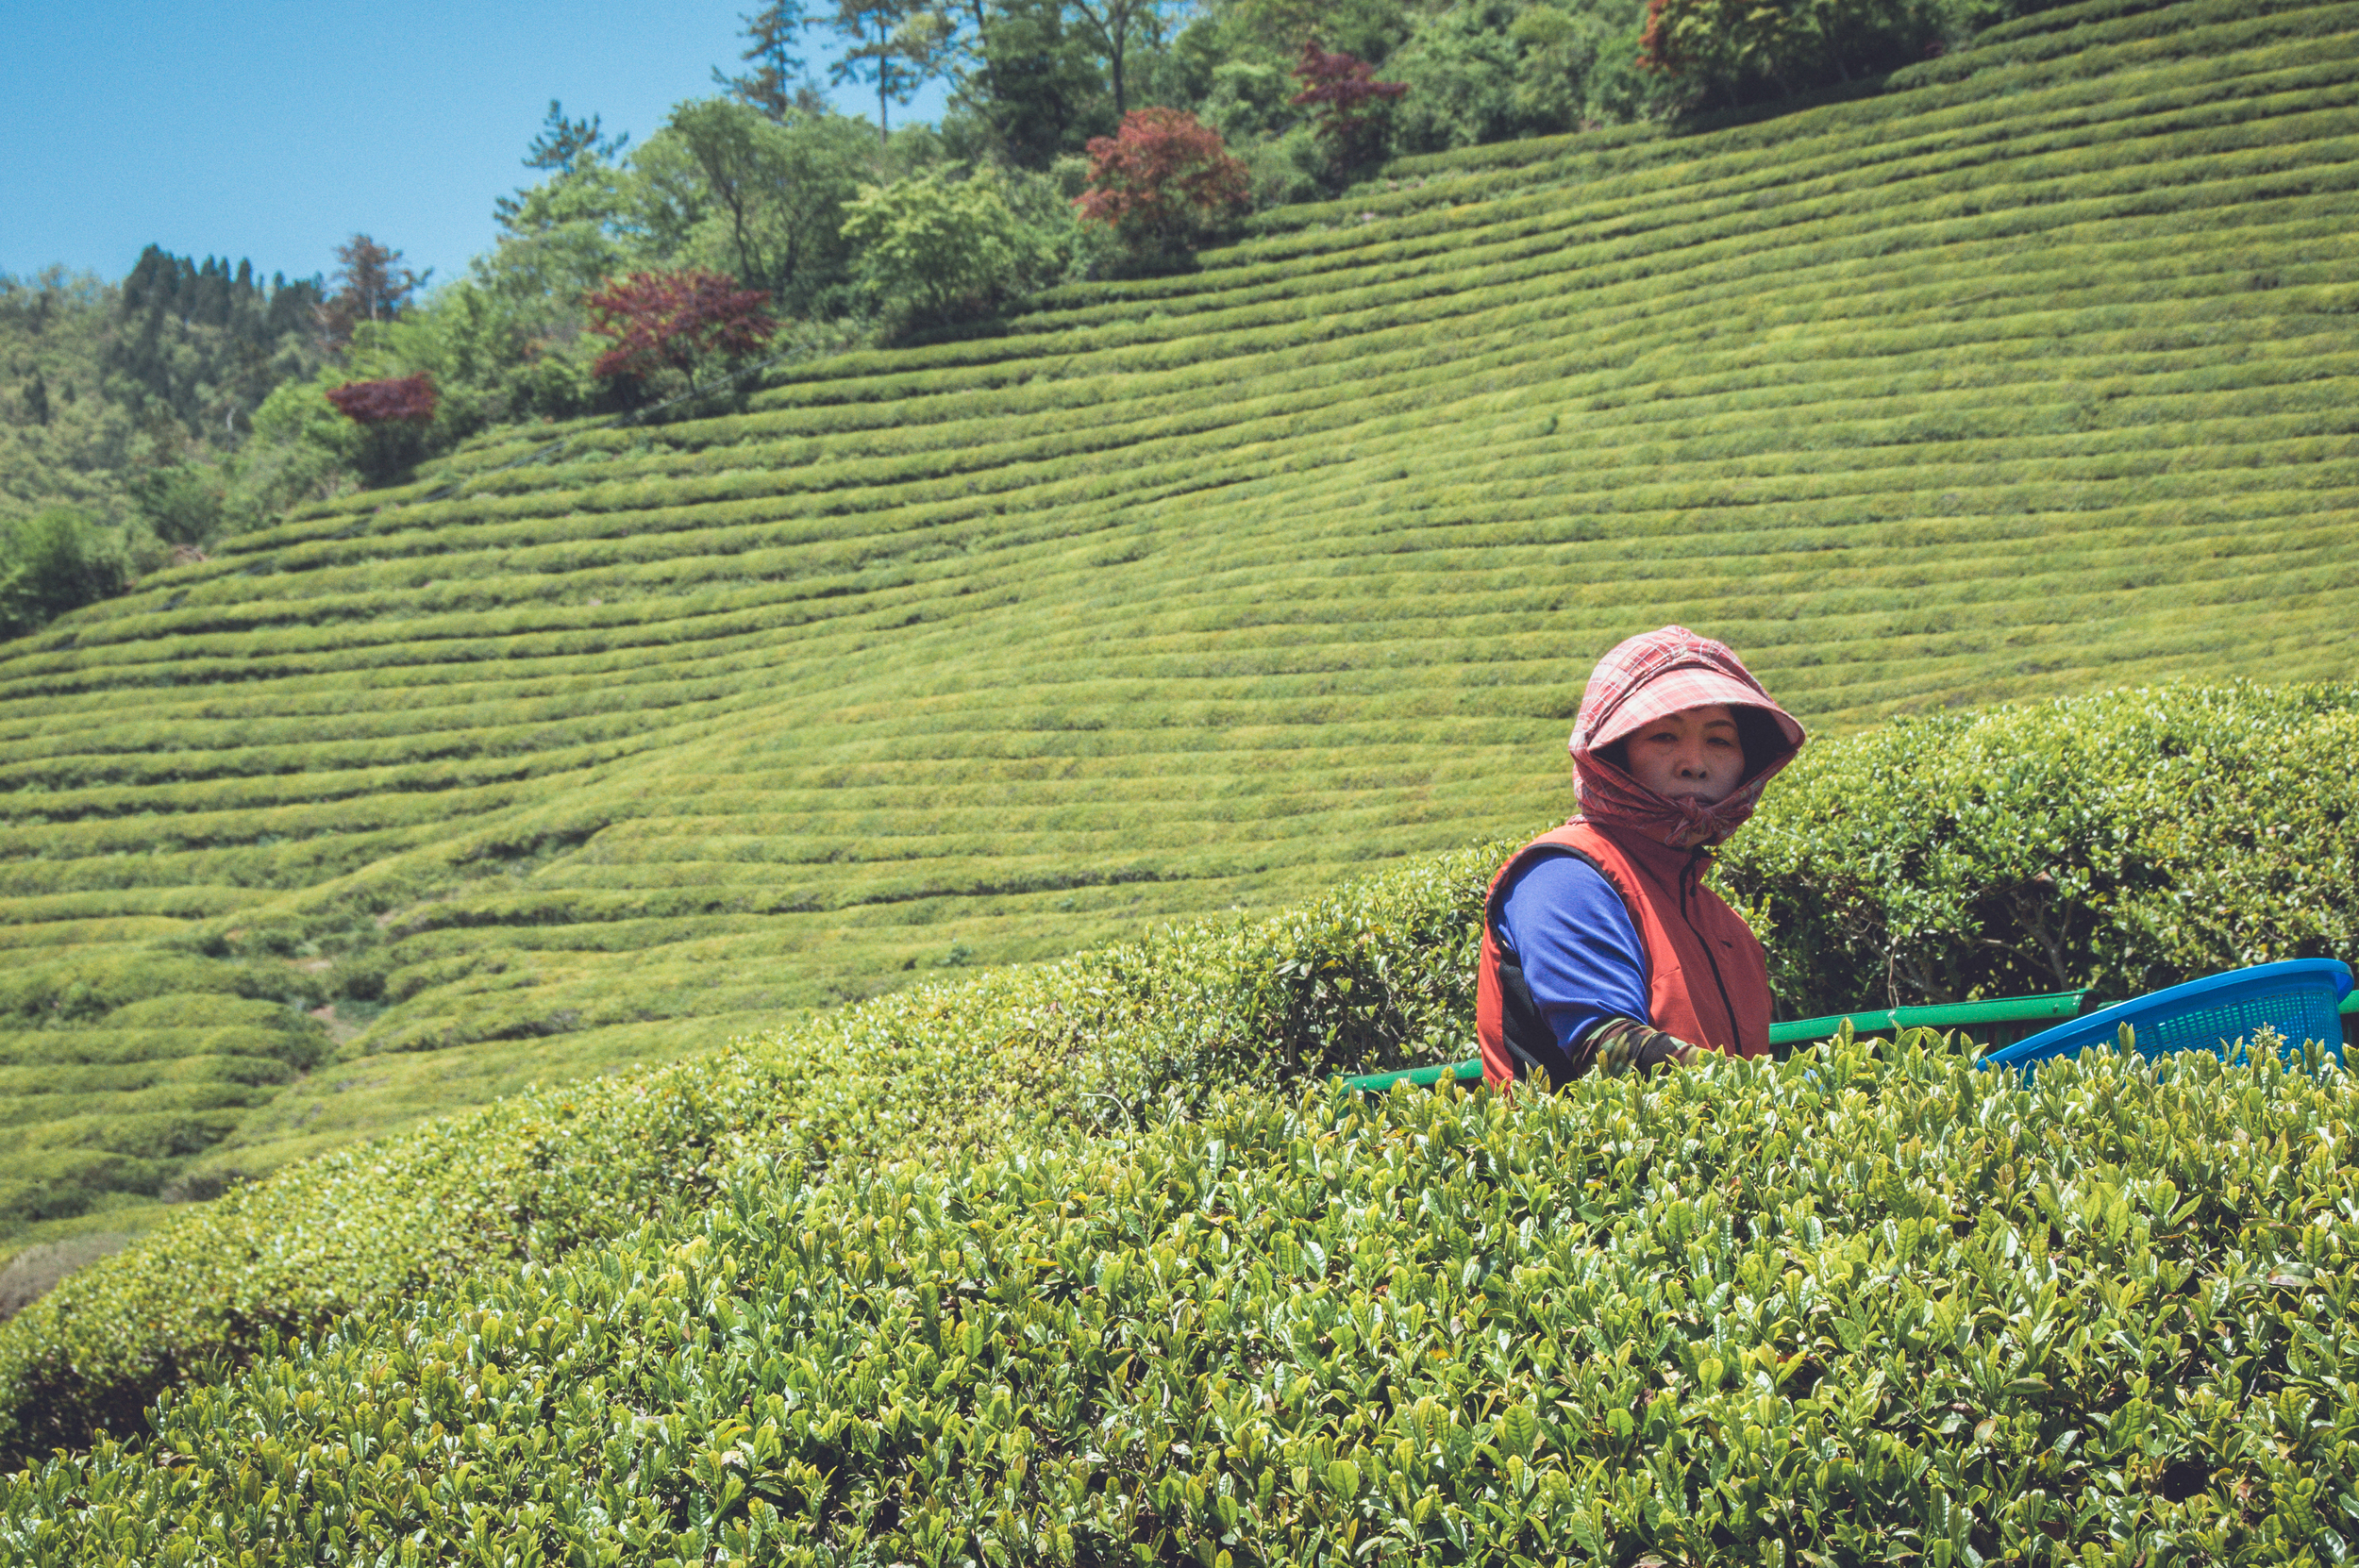 Boseong Green Tea Fields (12 of 21).jpg